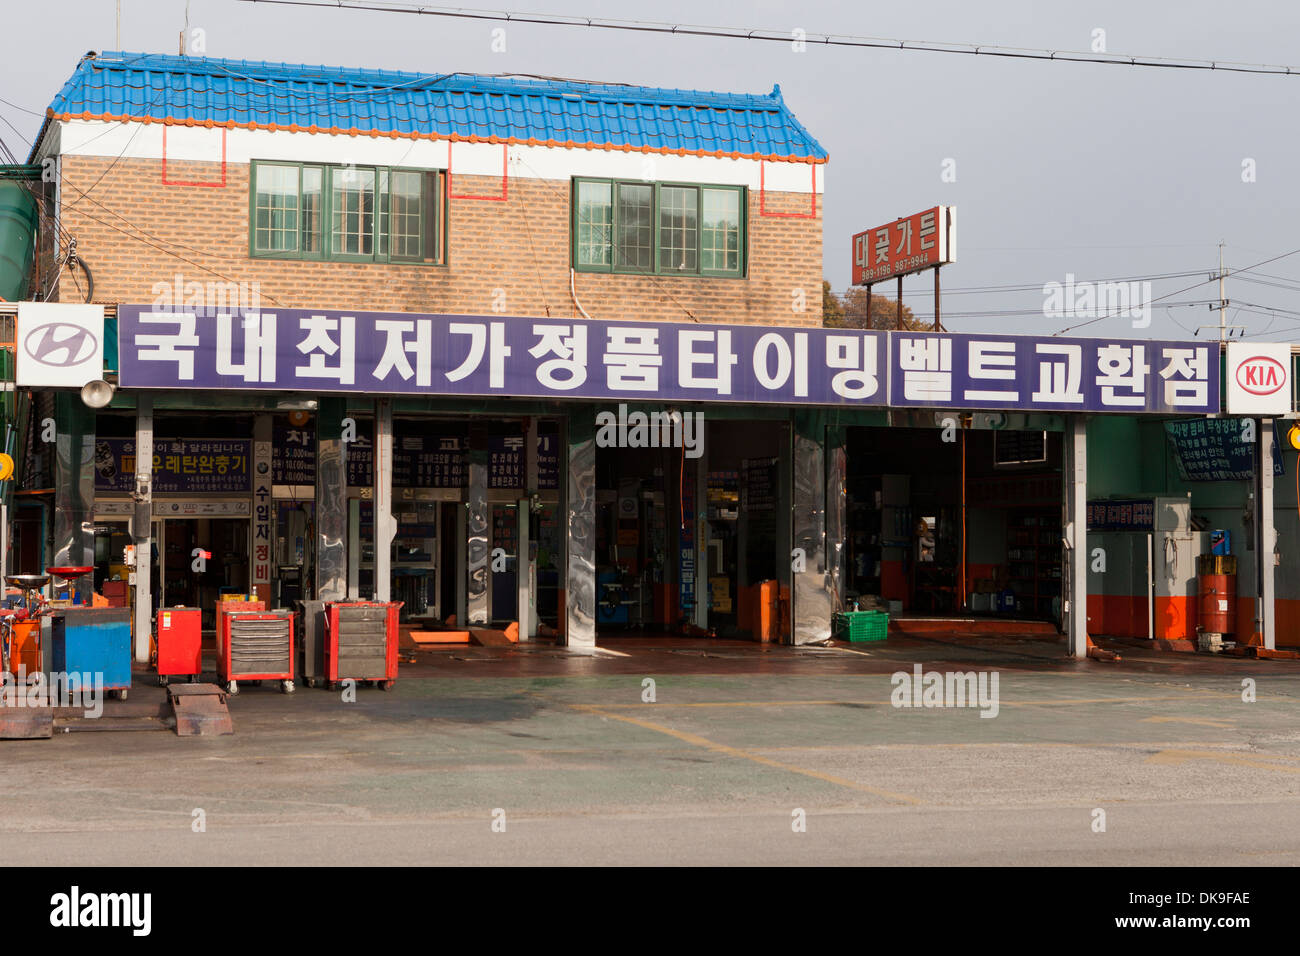 Professional mechanic's garage bays - South, Korea - Stock Image